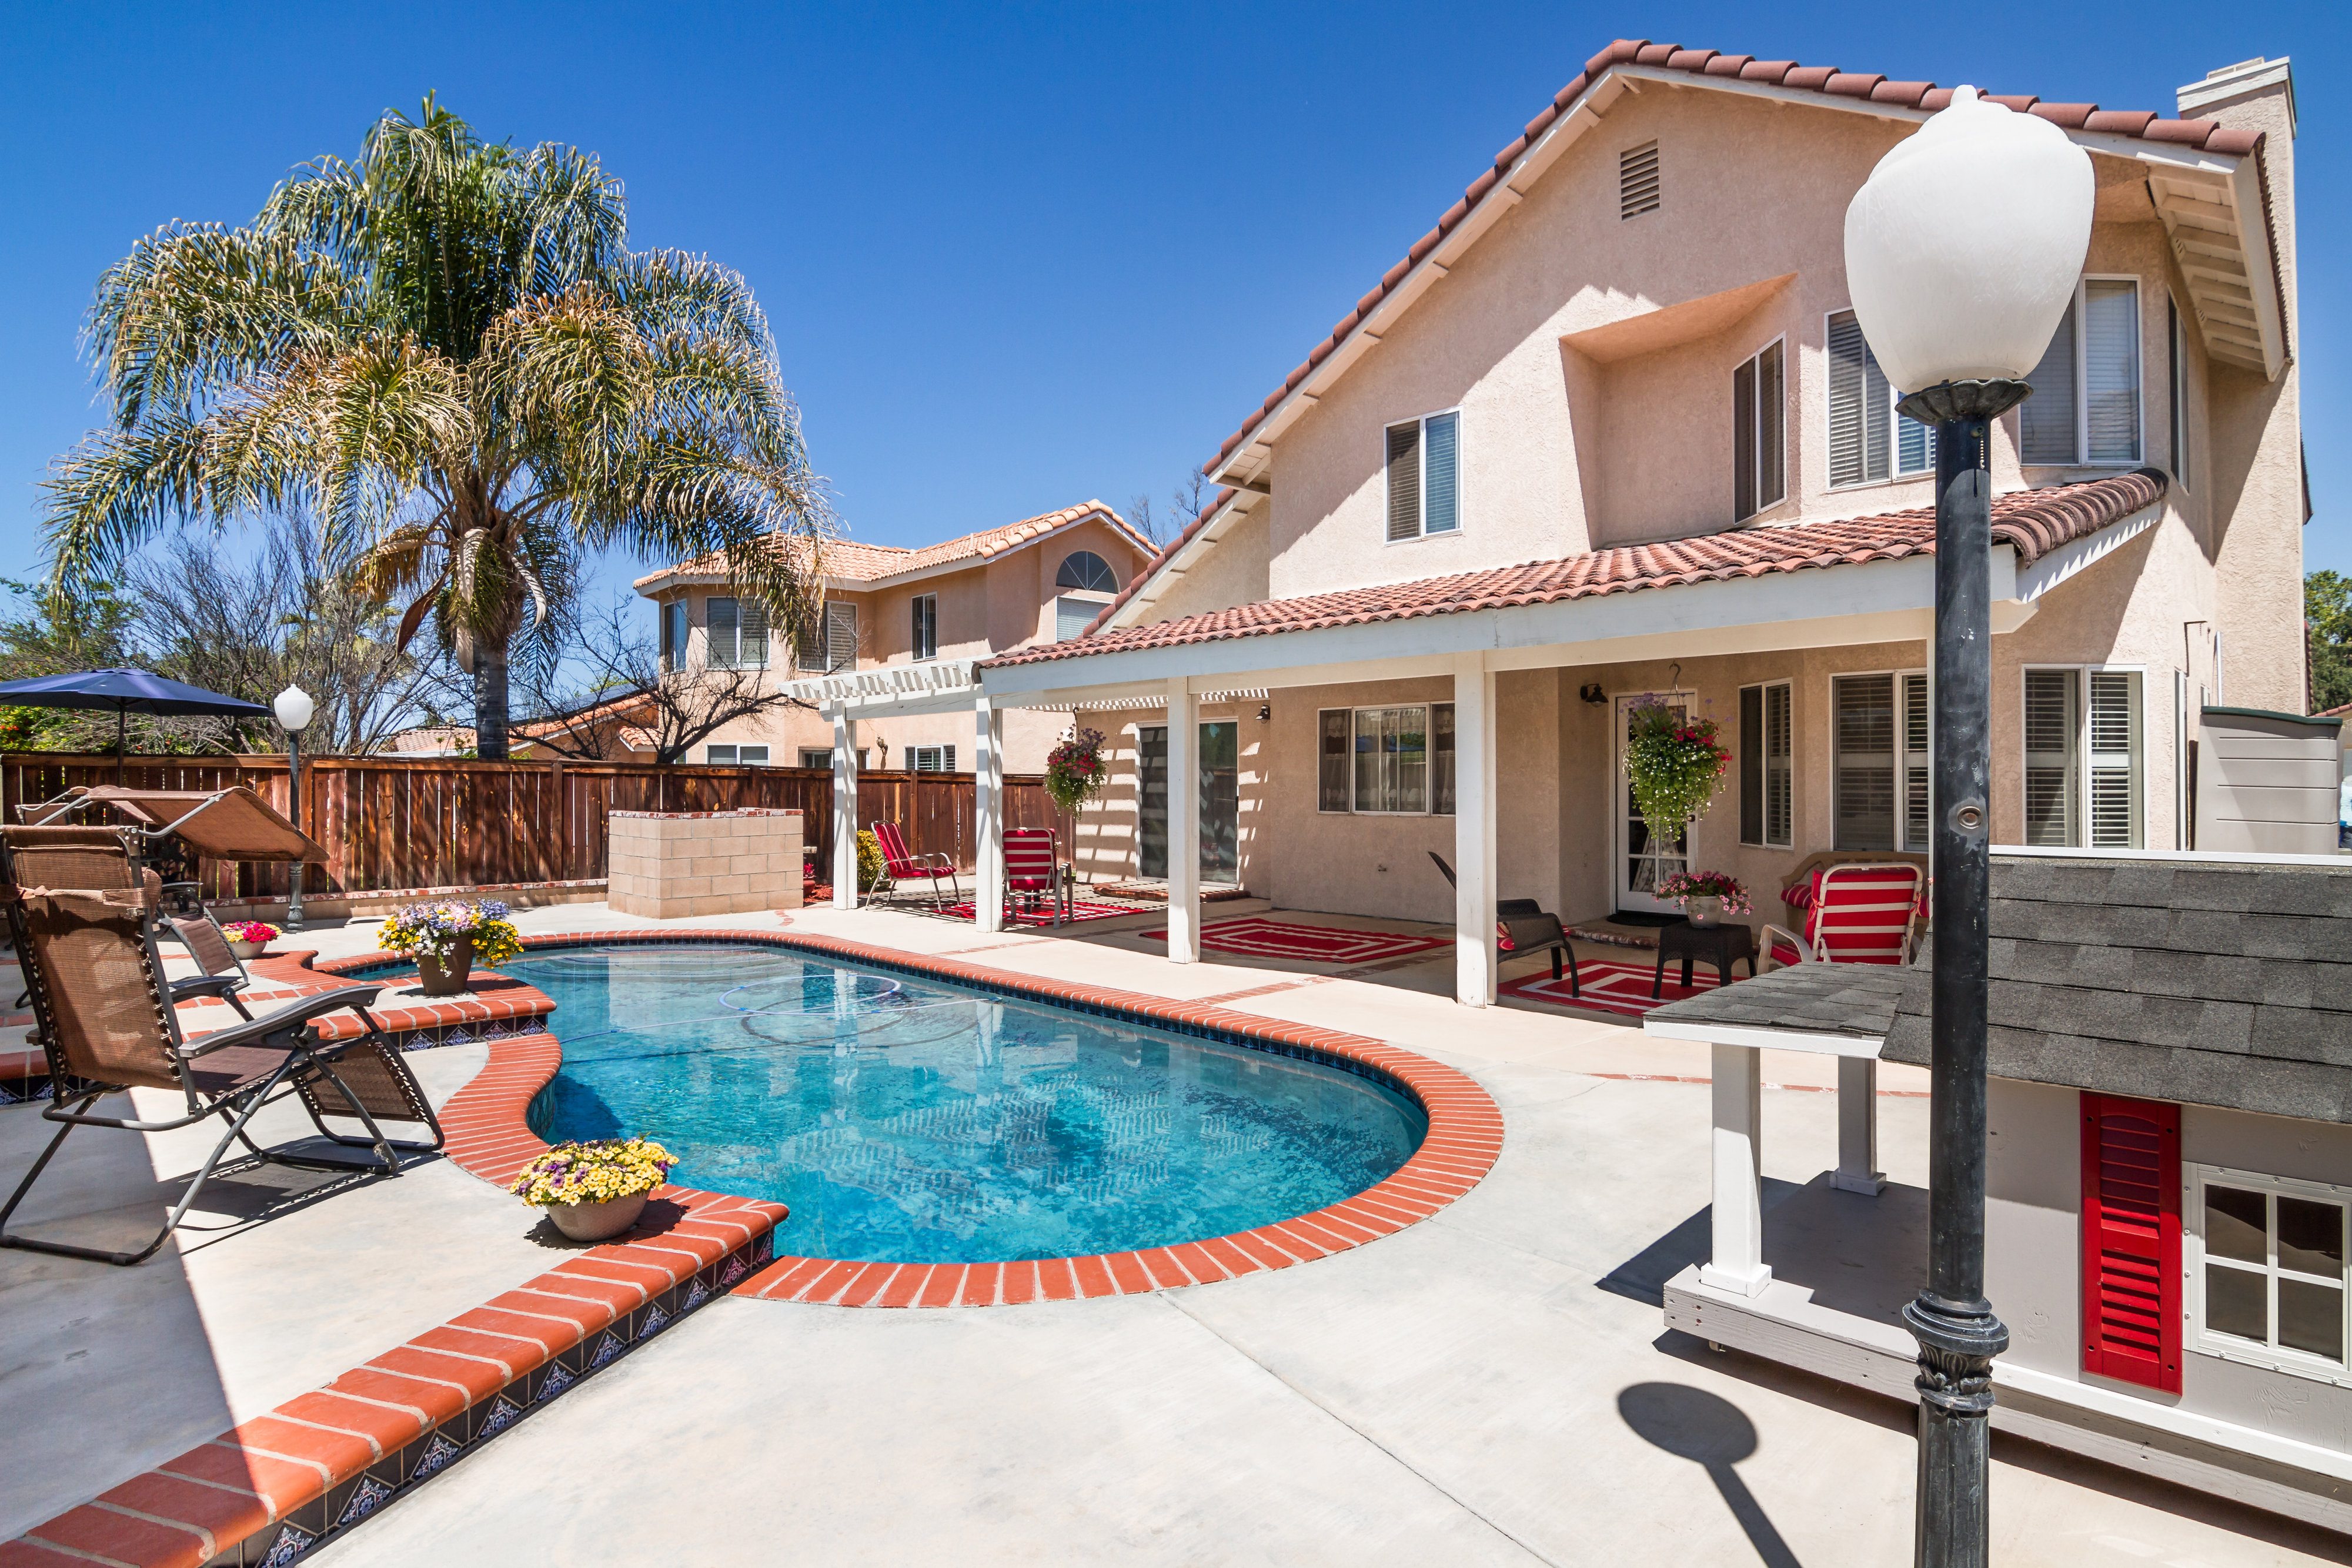 Temecula pool home mitchell home sales for Mitchell homes price list